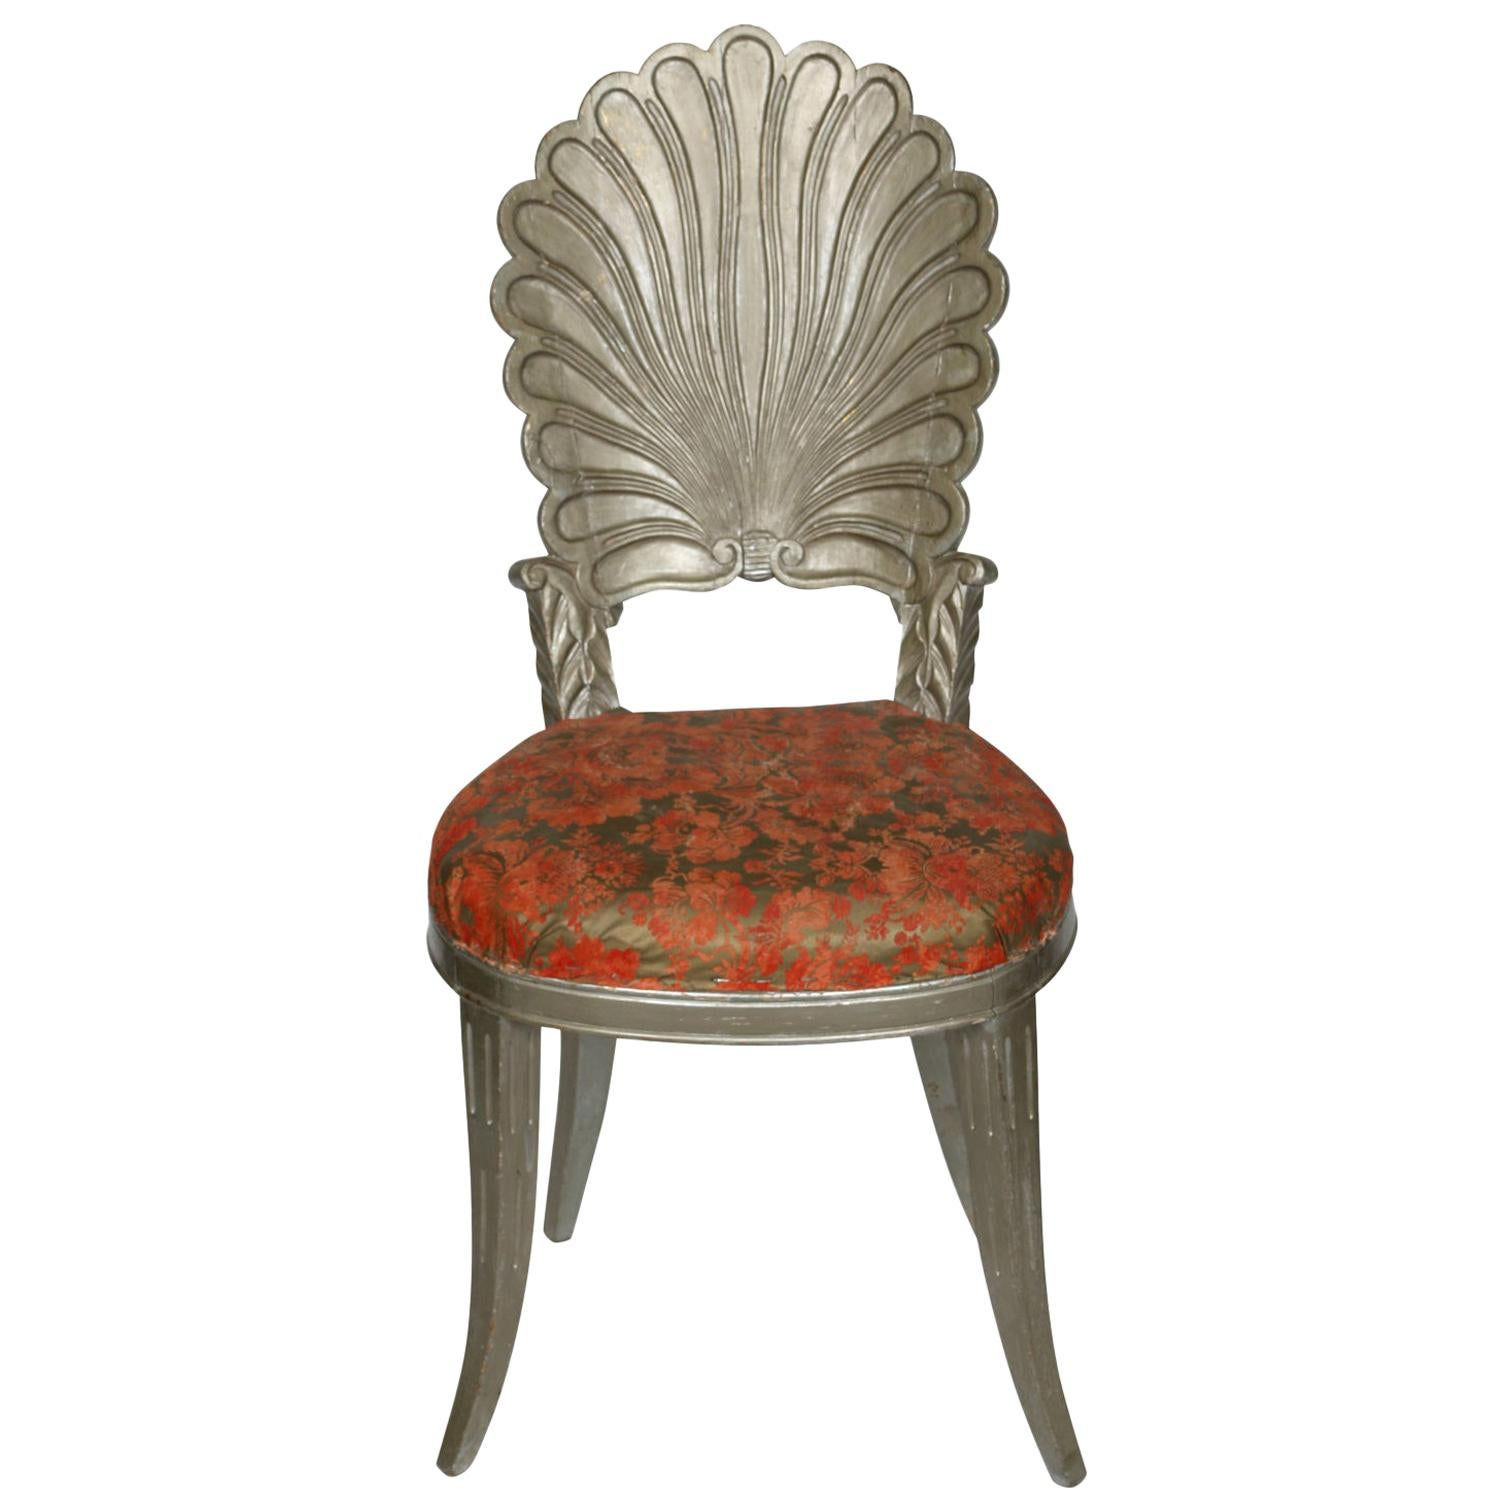 Silver Painted Grotto Shell Chair